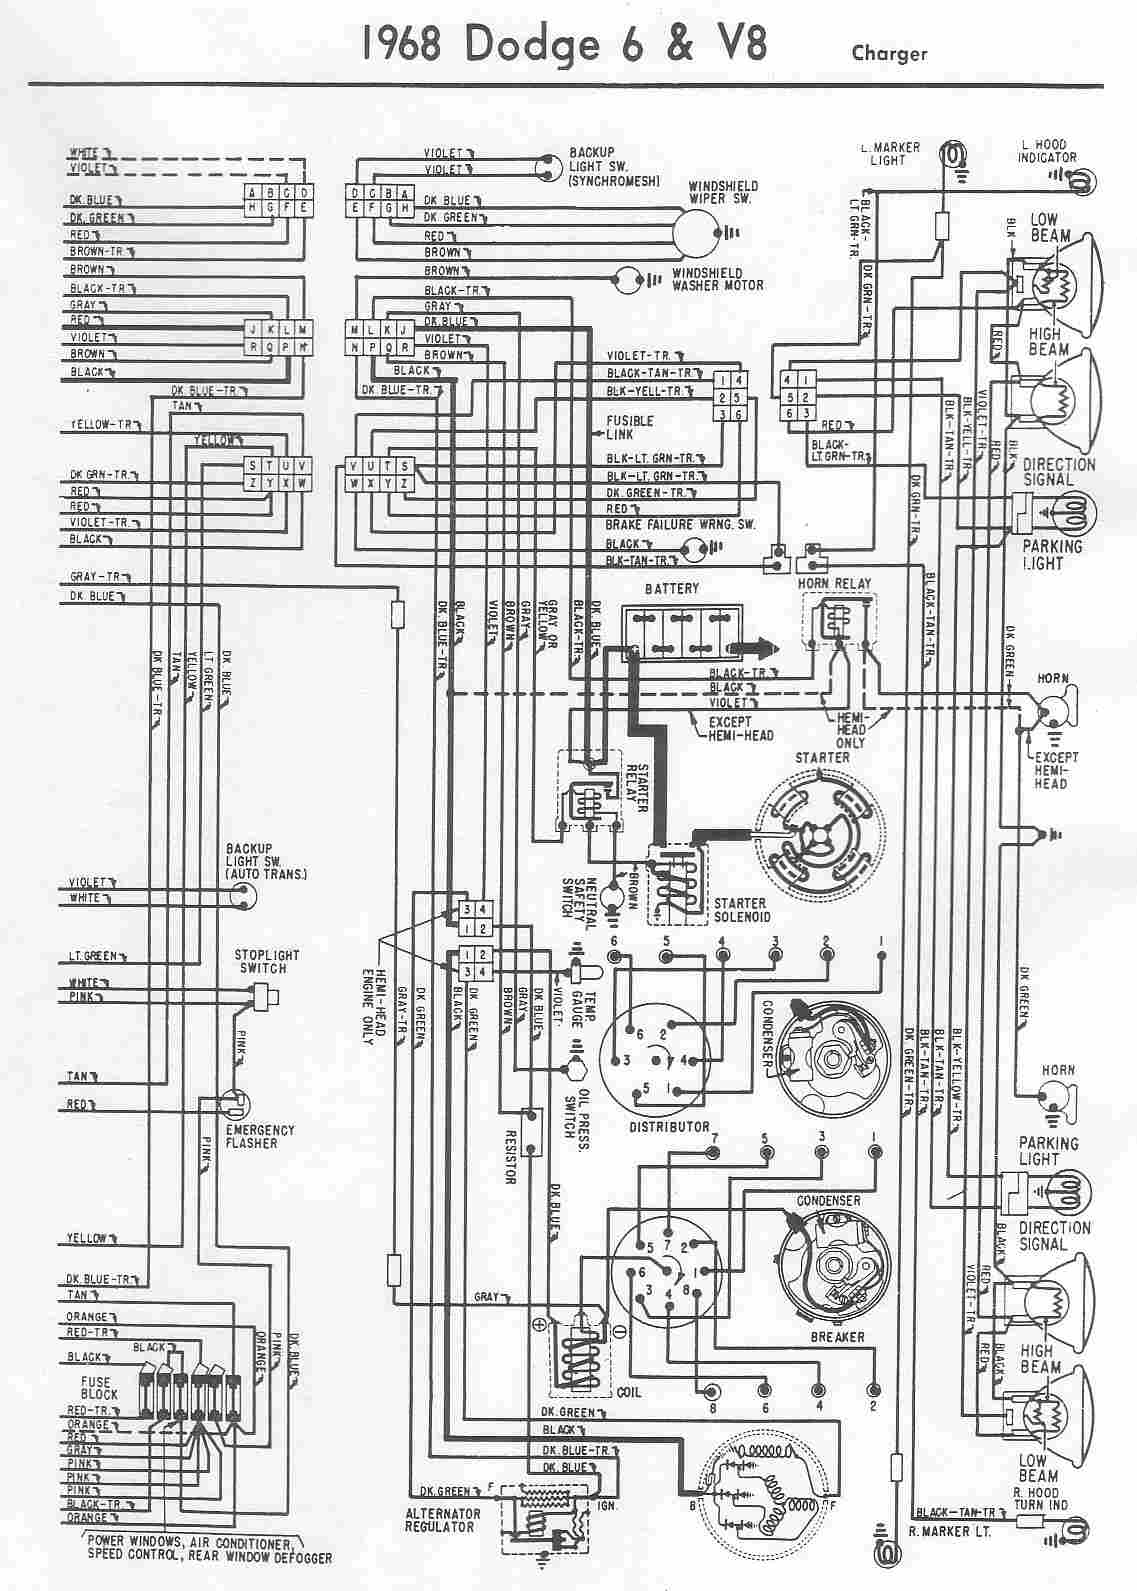 small resolution of 1966 dodge dart ignition wiring diagram wiring diagram source rh 13 1 2 logistra net de 1972 dodge challenger ignition wiring diagram 1972 dodge dart demon